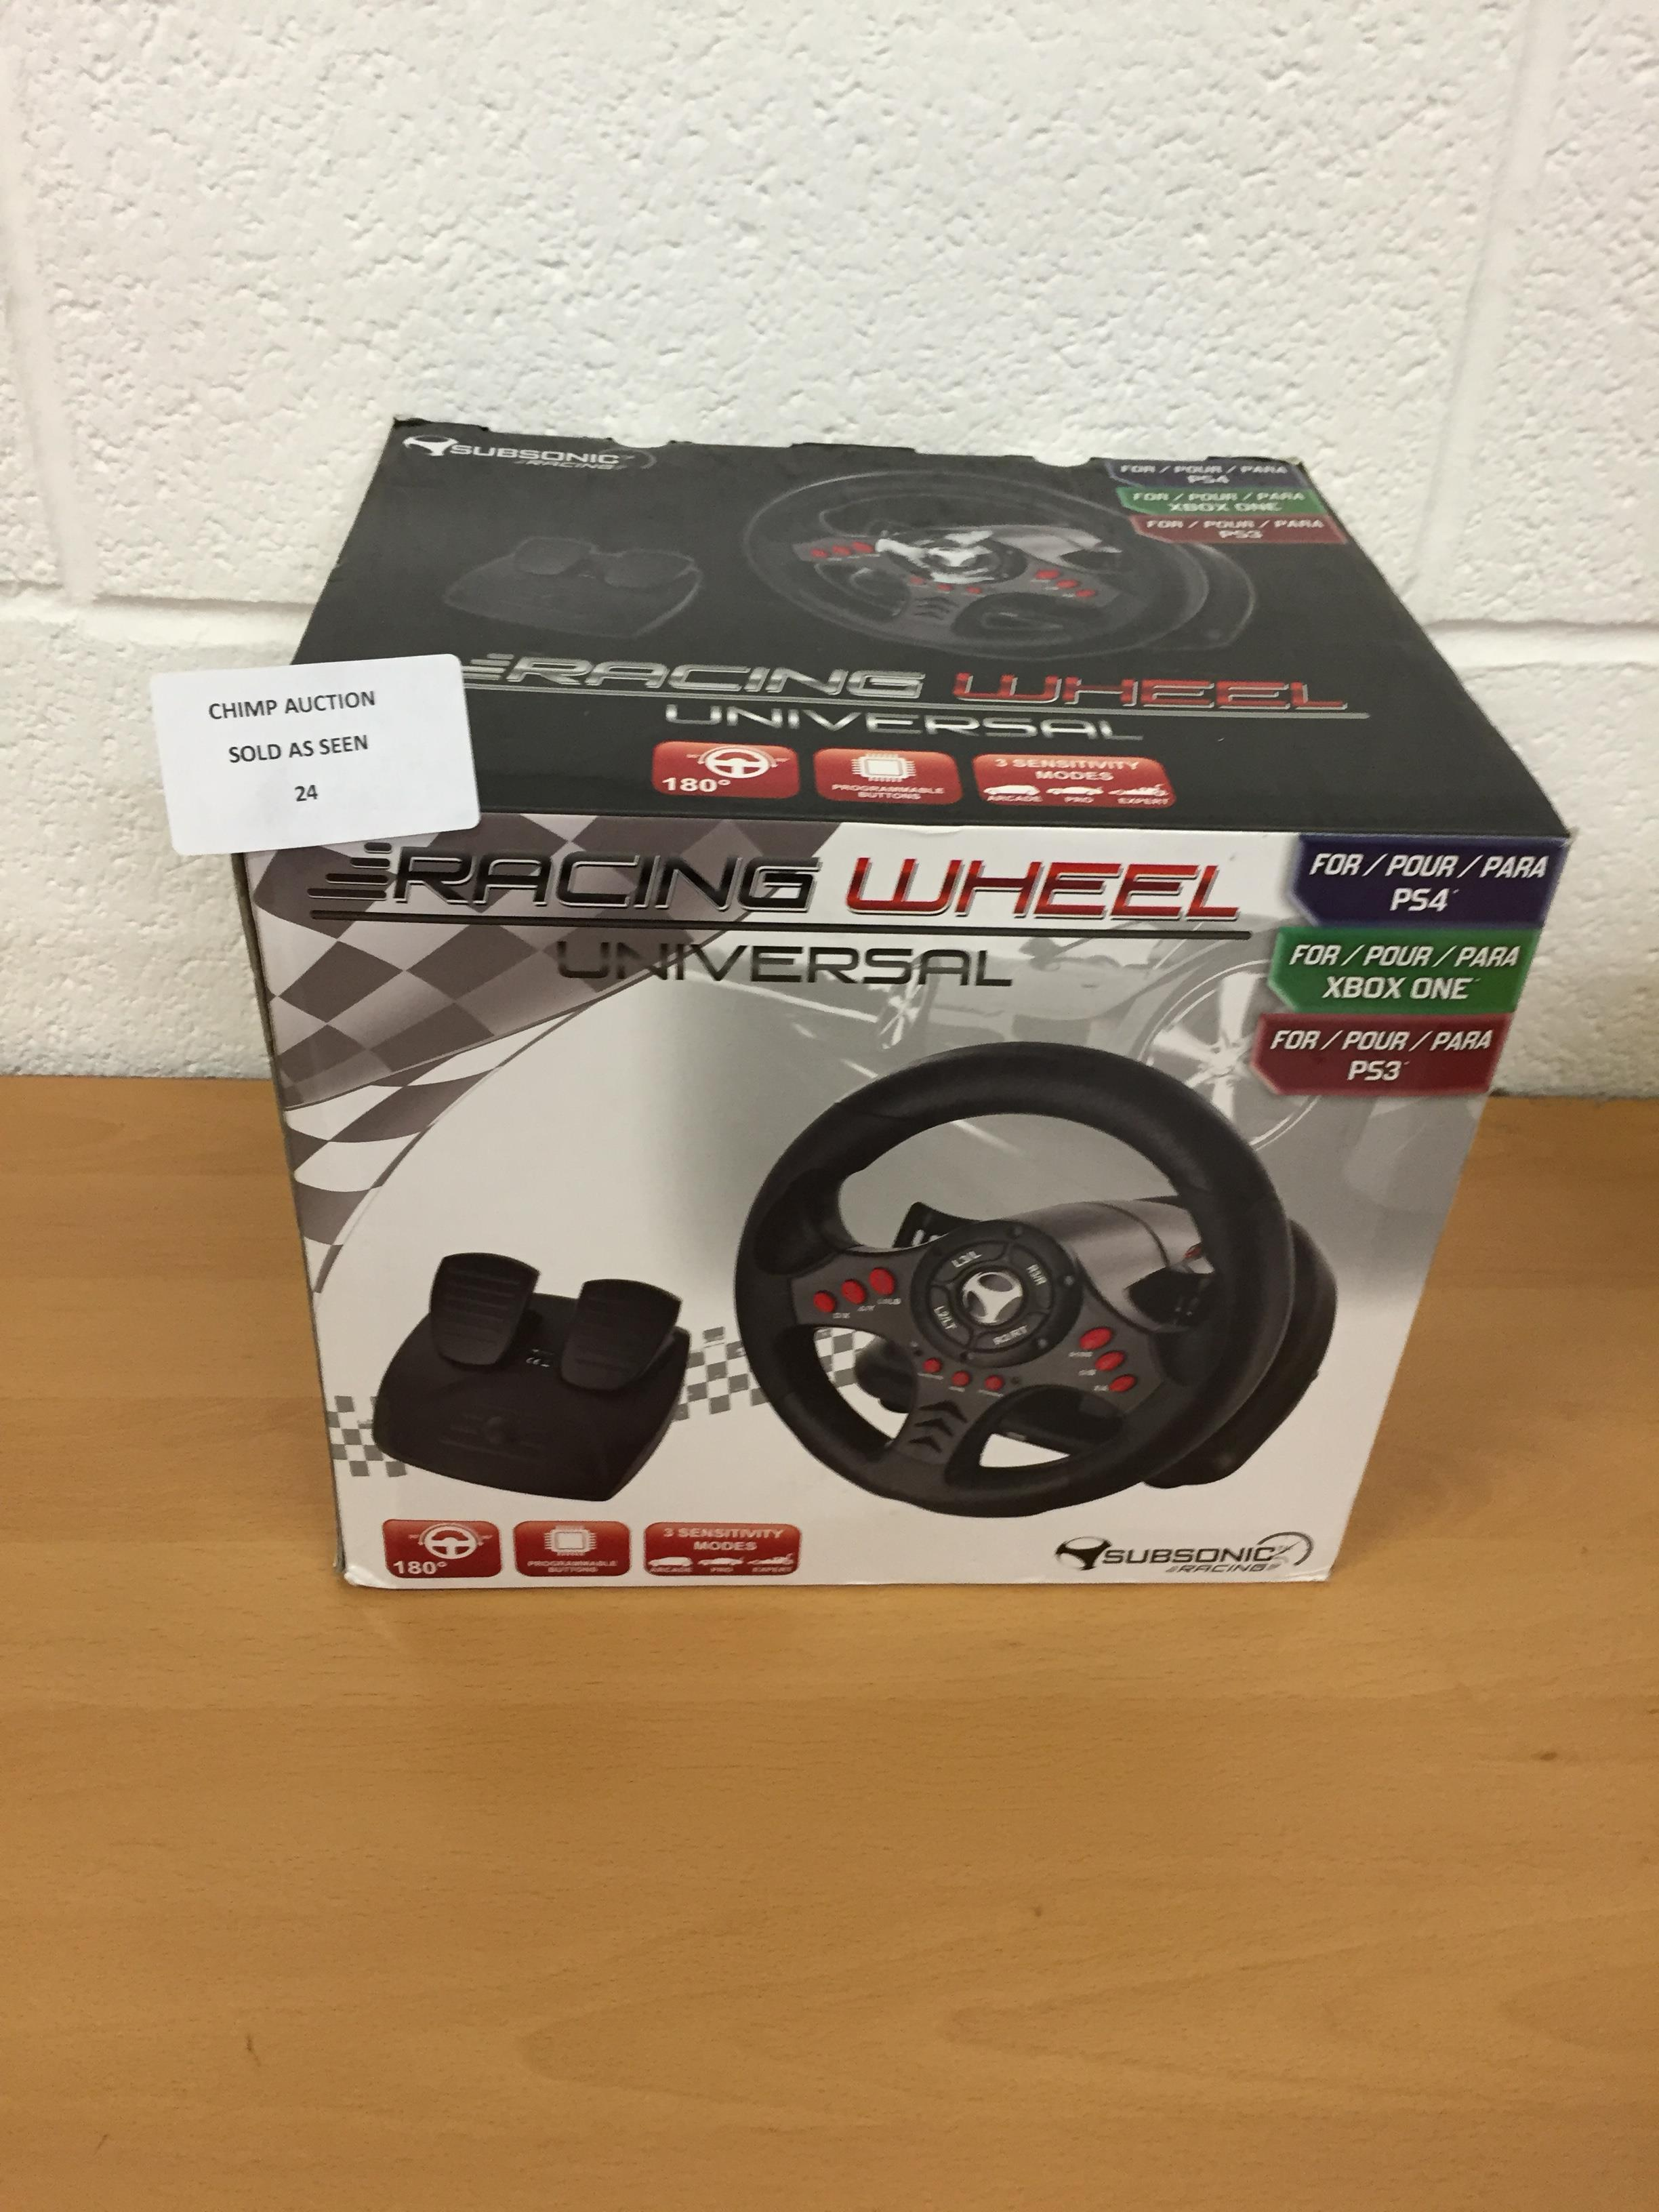 Lot 24 - Subsonic Racing Wheel Universal edition PS4, Xbox One, PS3.